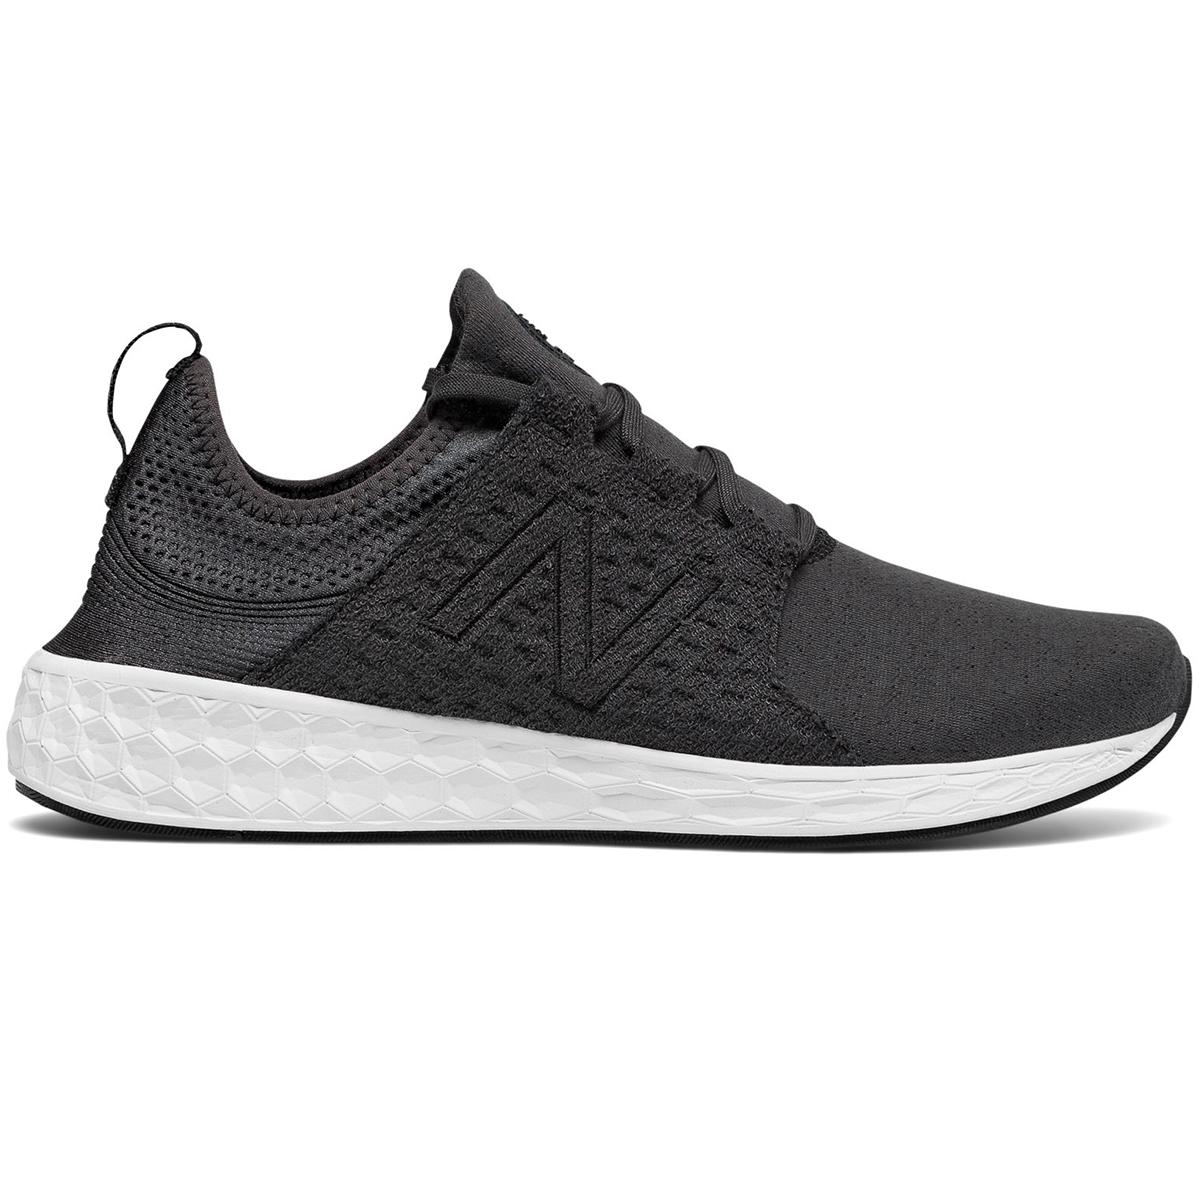 New Balance Men's Fresh Foam Cruz Retro Hoodie Running Shoes - Black, 8